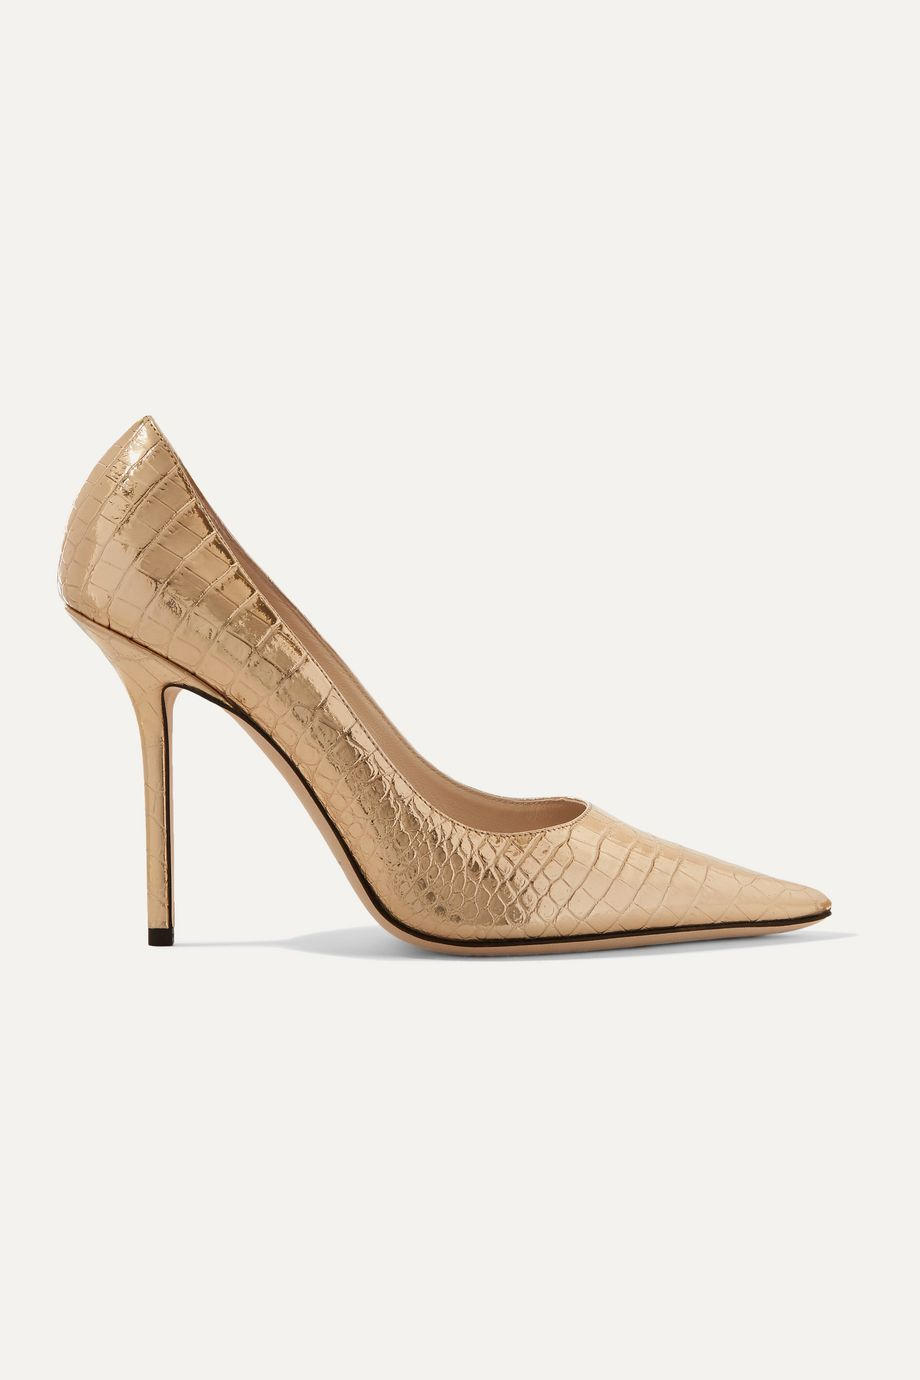 Jimmy Choo Love 100 metallic croc-effect leather pumps